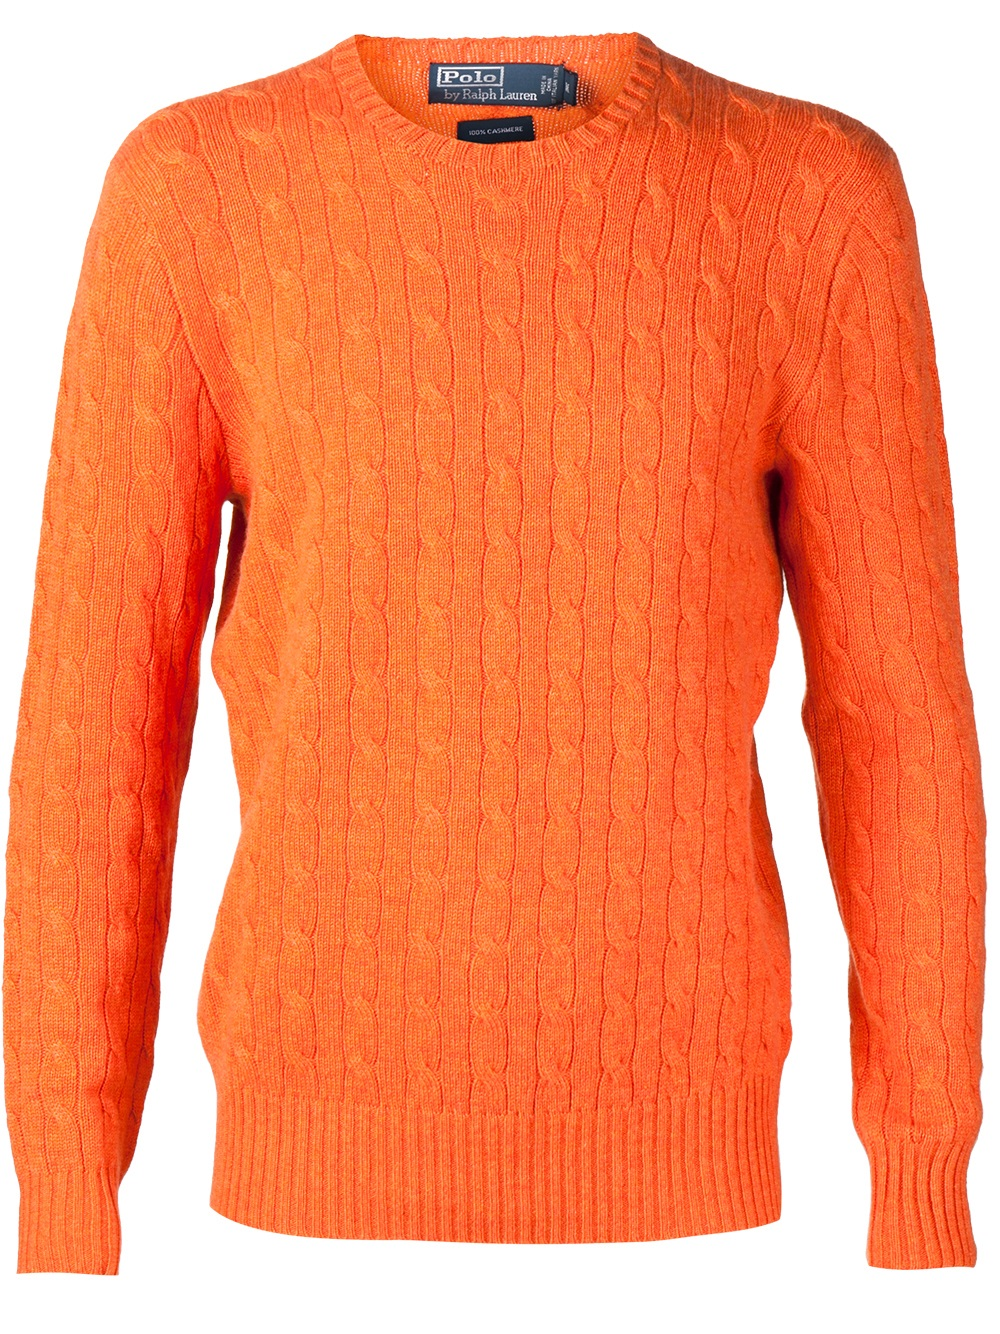 Lyst Polo Ralph Lauren Cashmere Cable Knit Sweater In Orange For Men